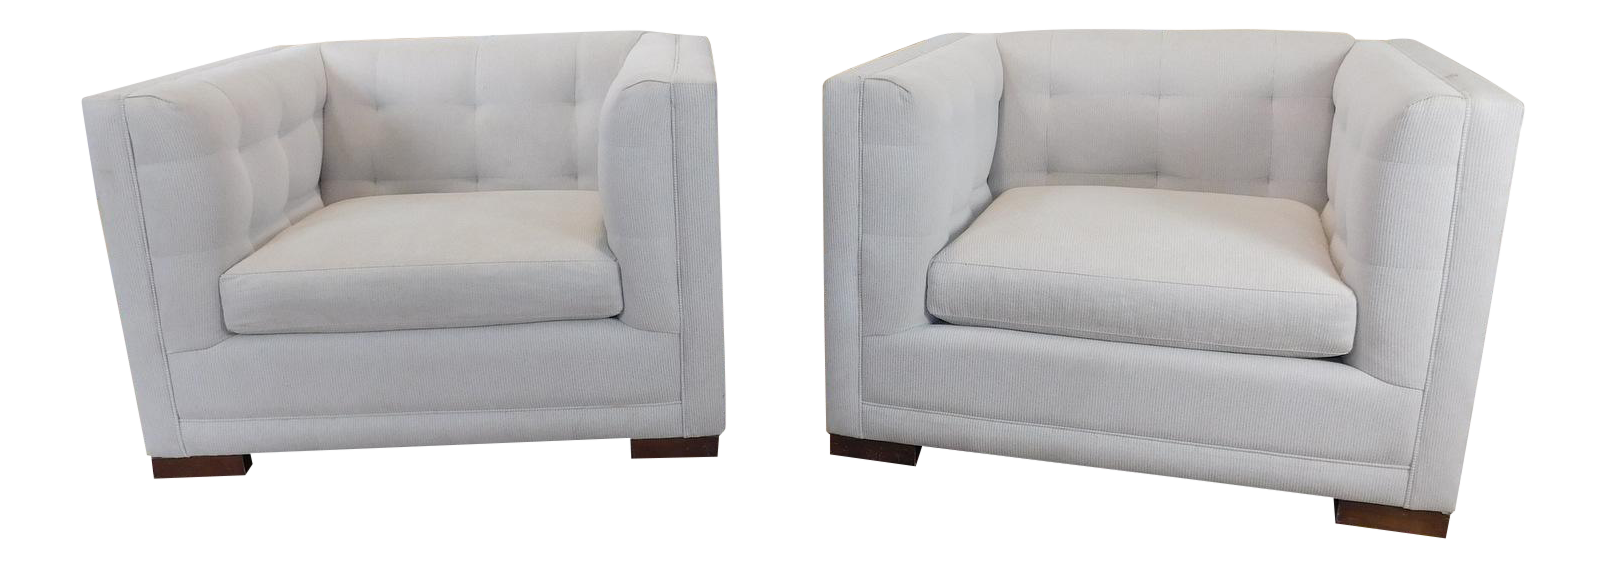 Crate U0026 Barrel Tufted Upholstered Cube Chairs   A Pair For Sale